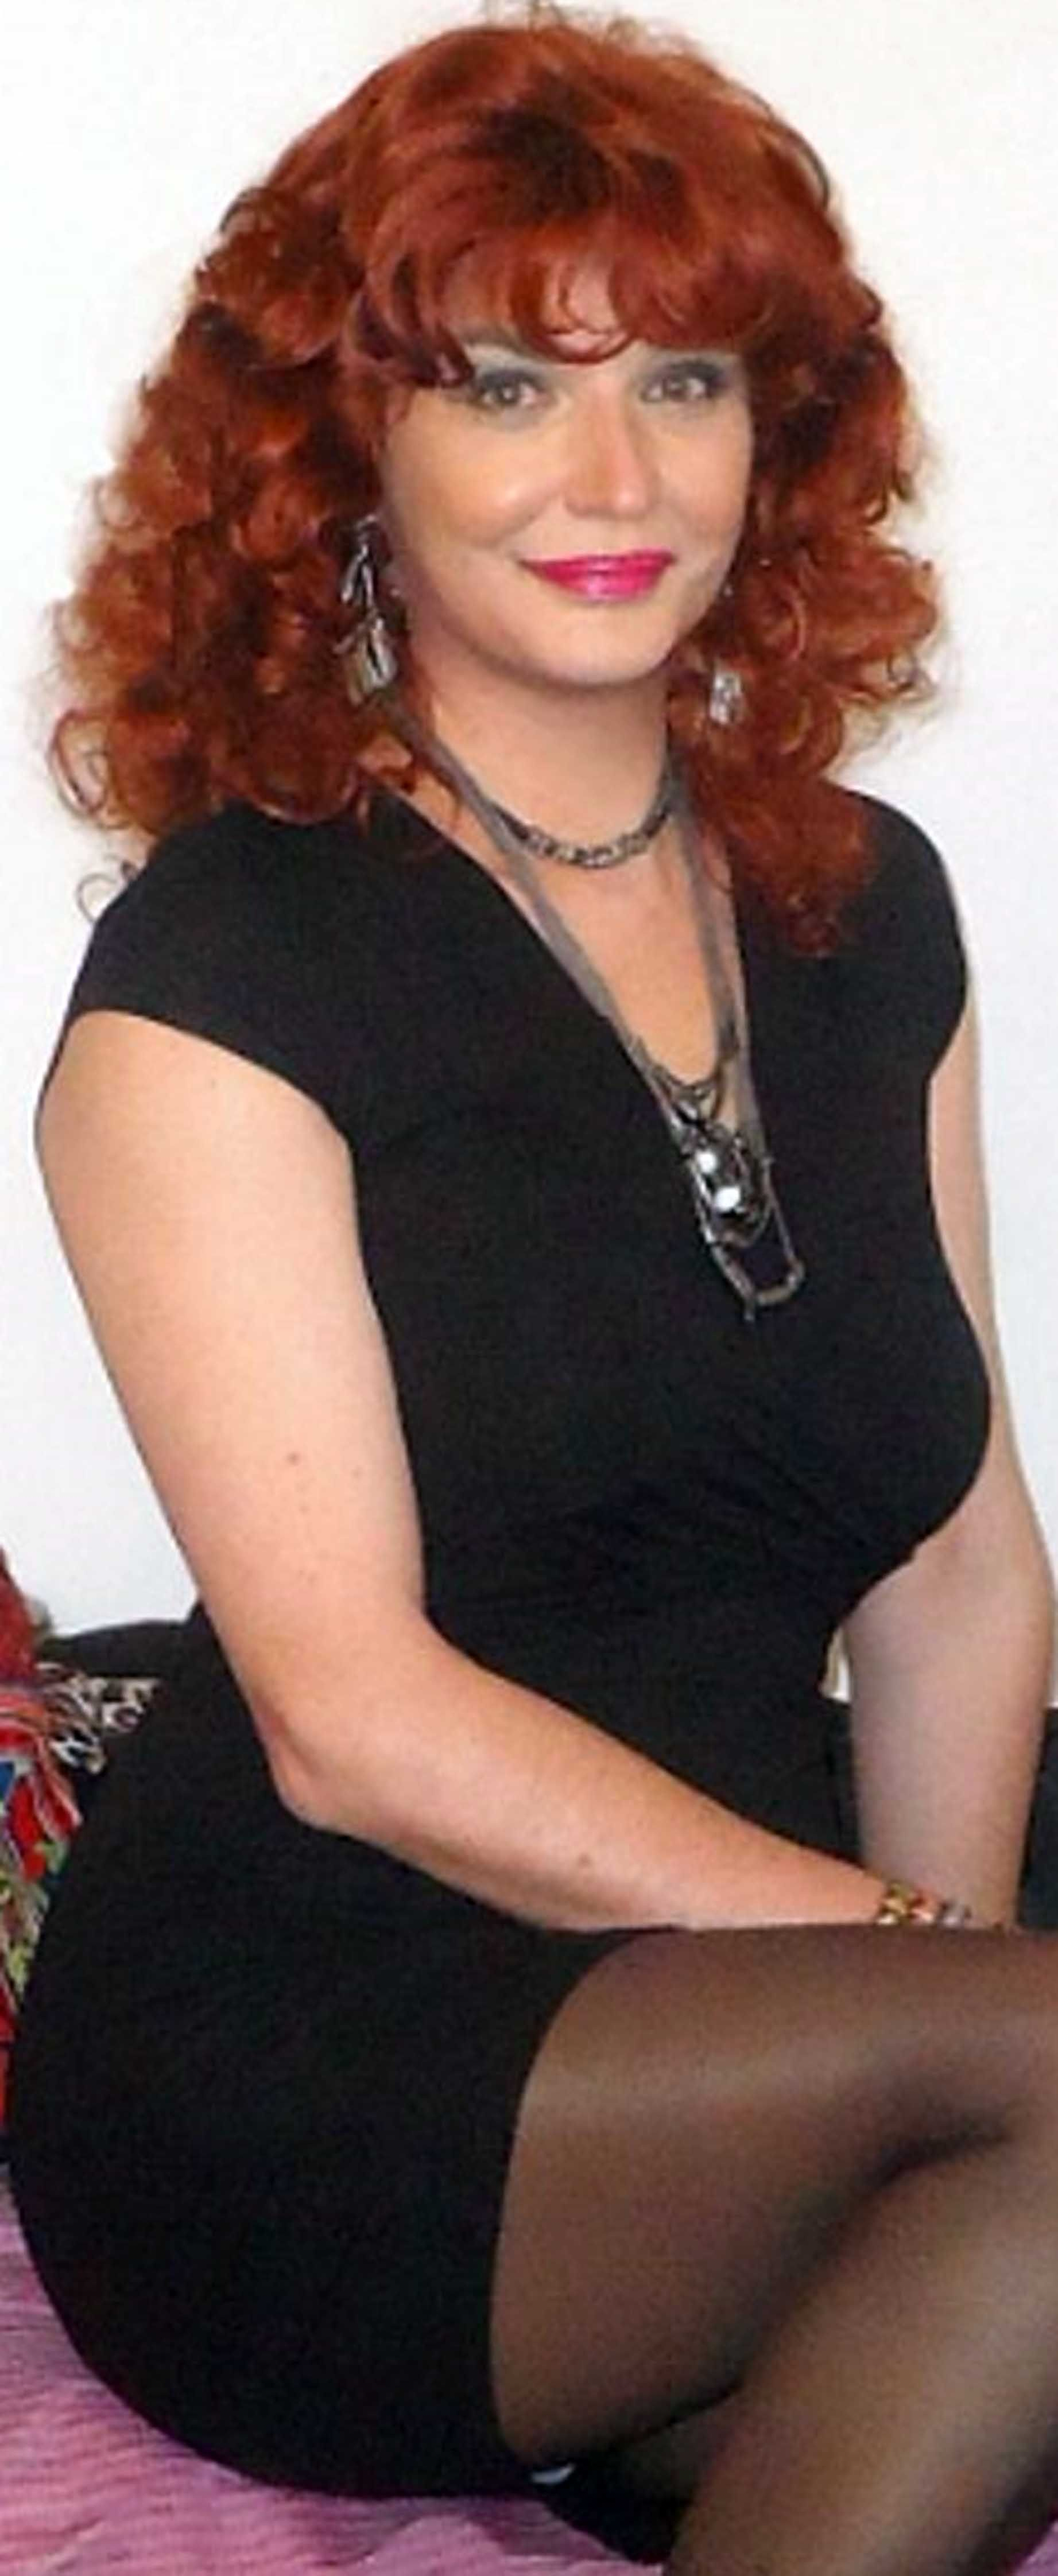 pindrew gaines on perfectly curvy redheads | pinterest